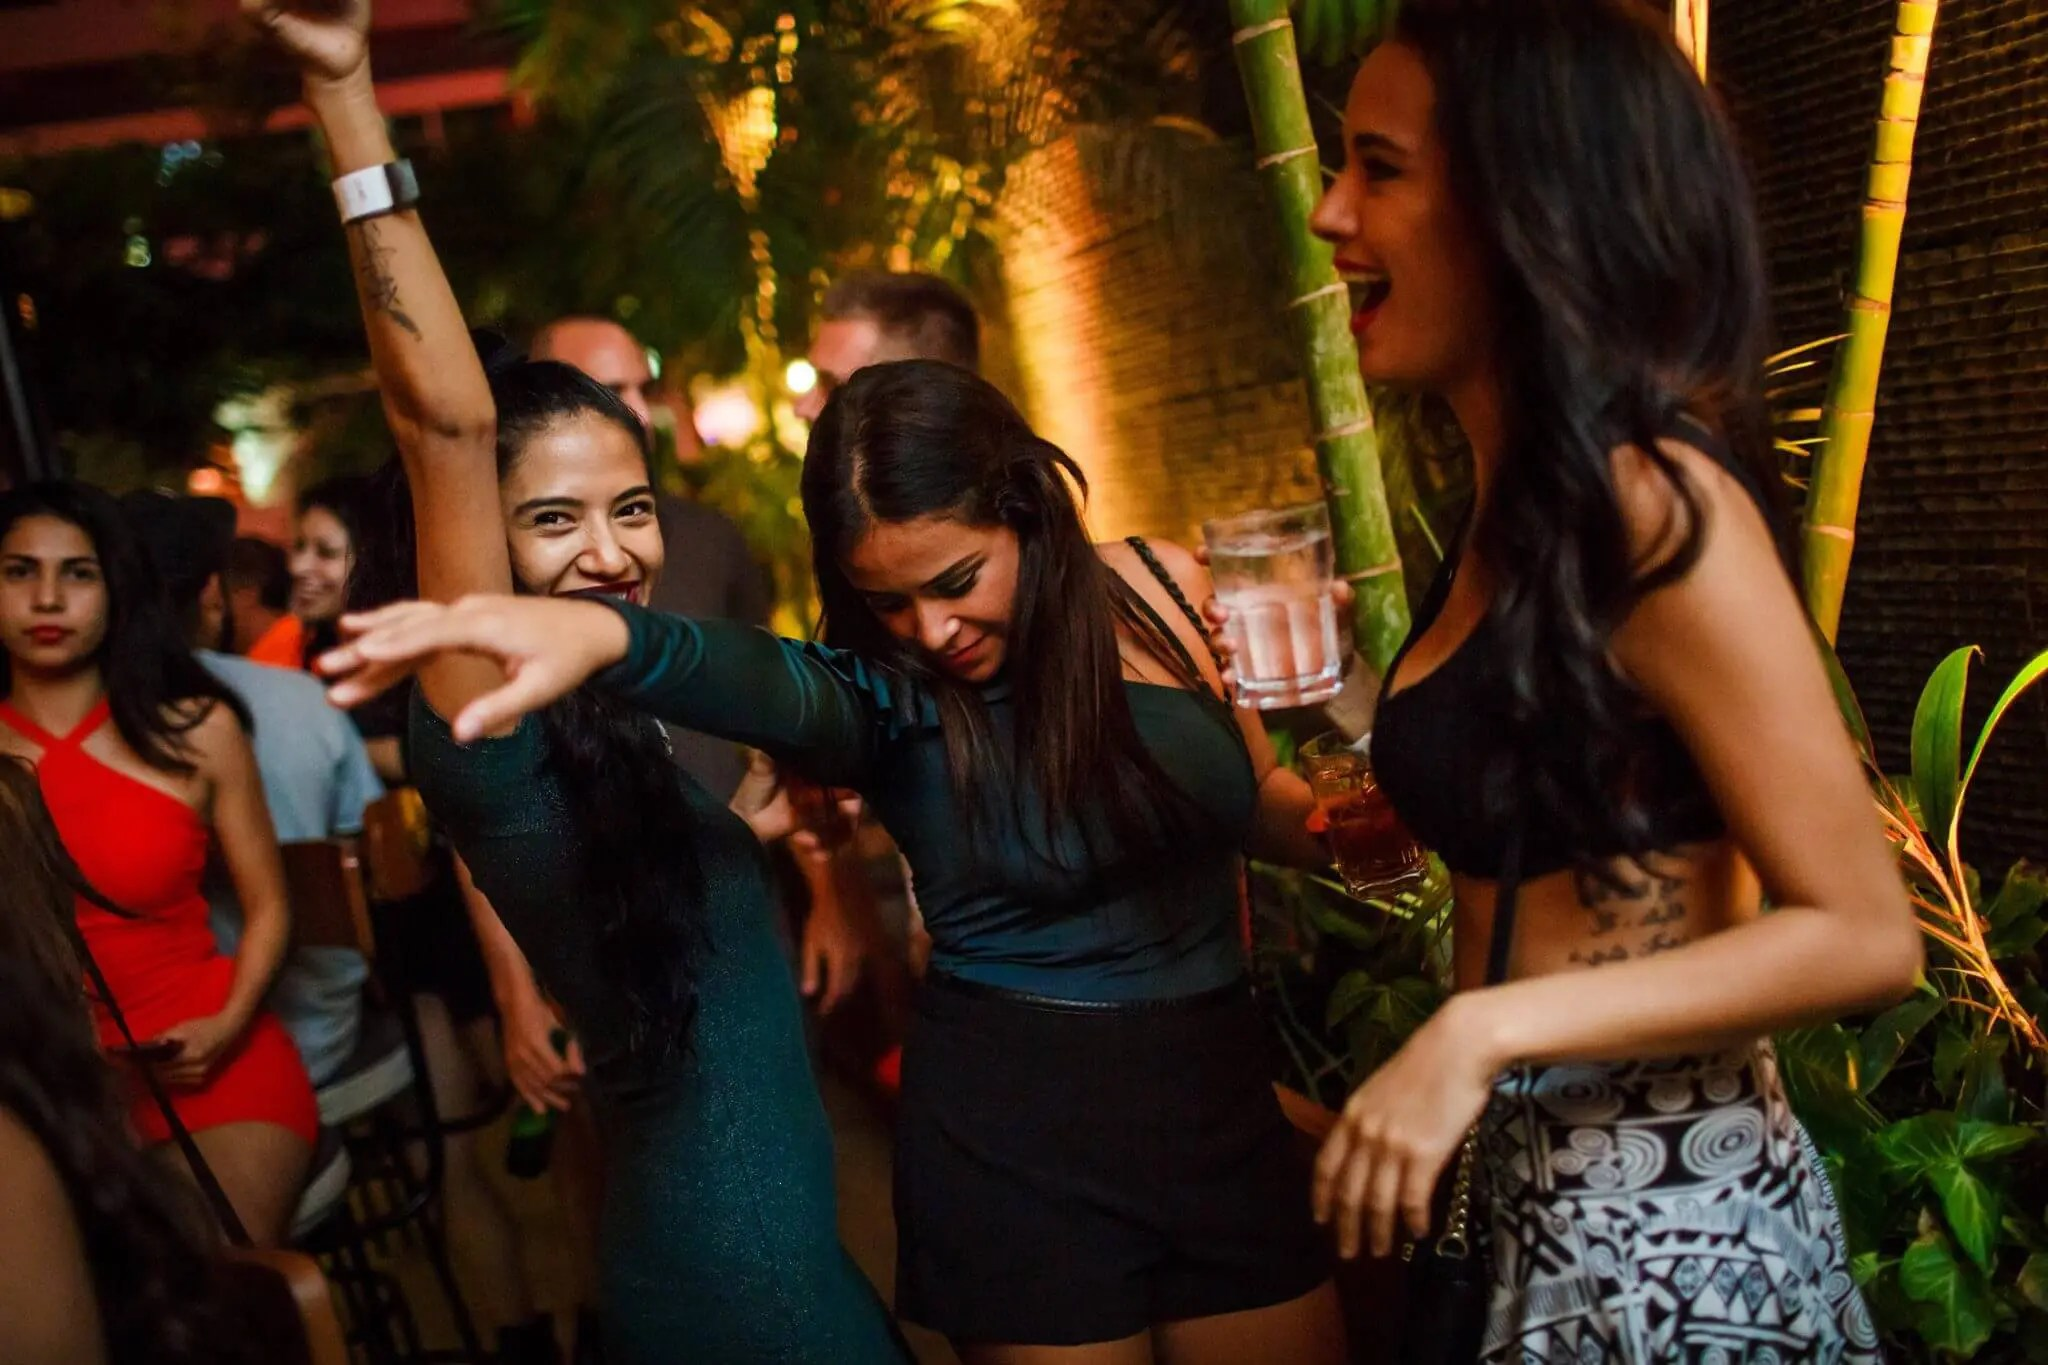 Ladies Night: Drink For FREE Every Night in Playa del Carmen